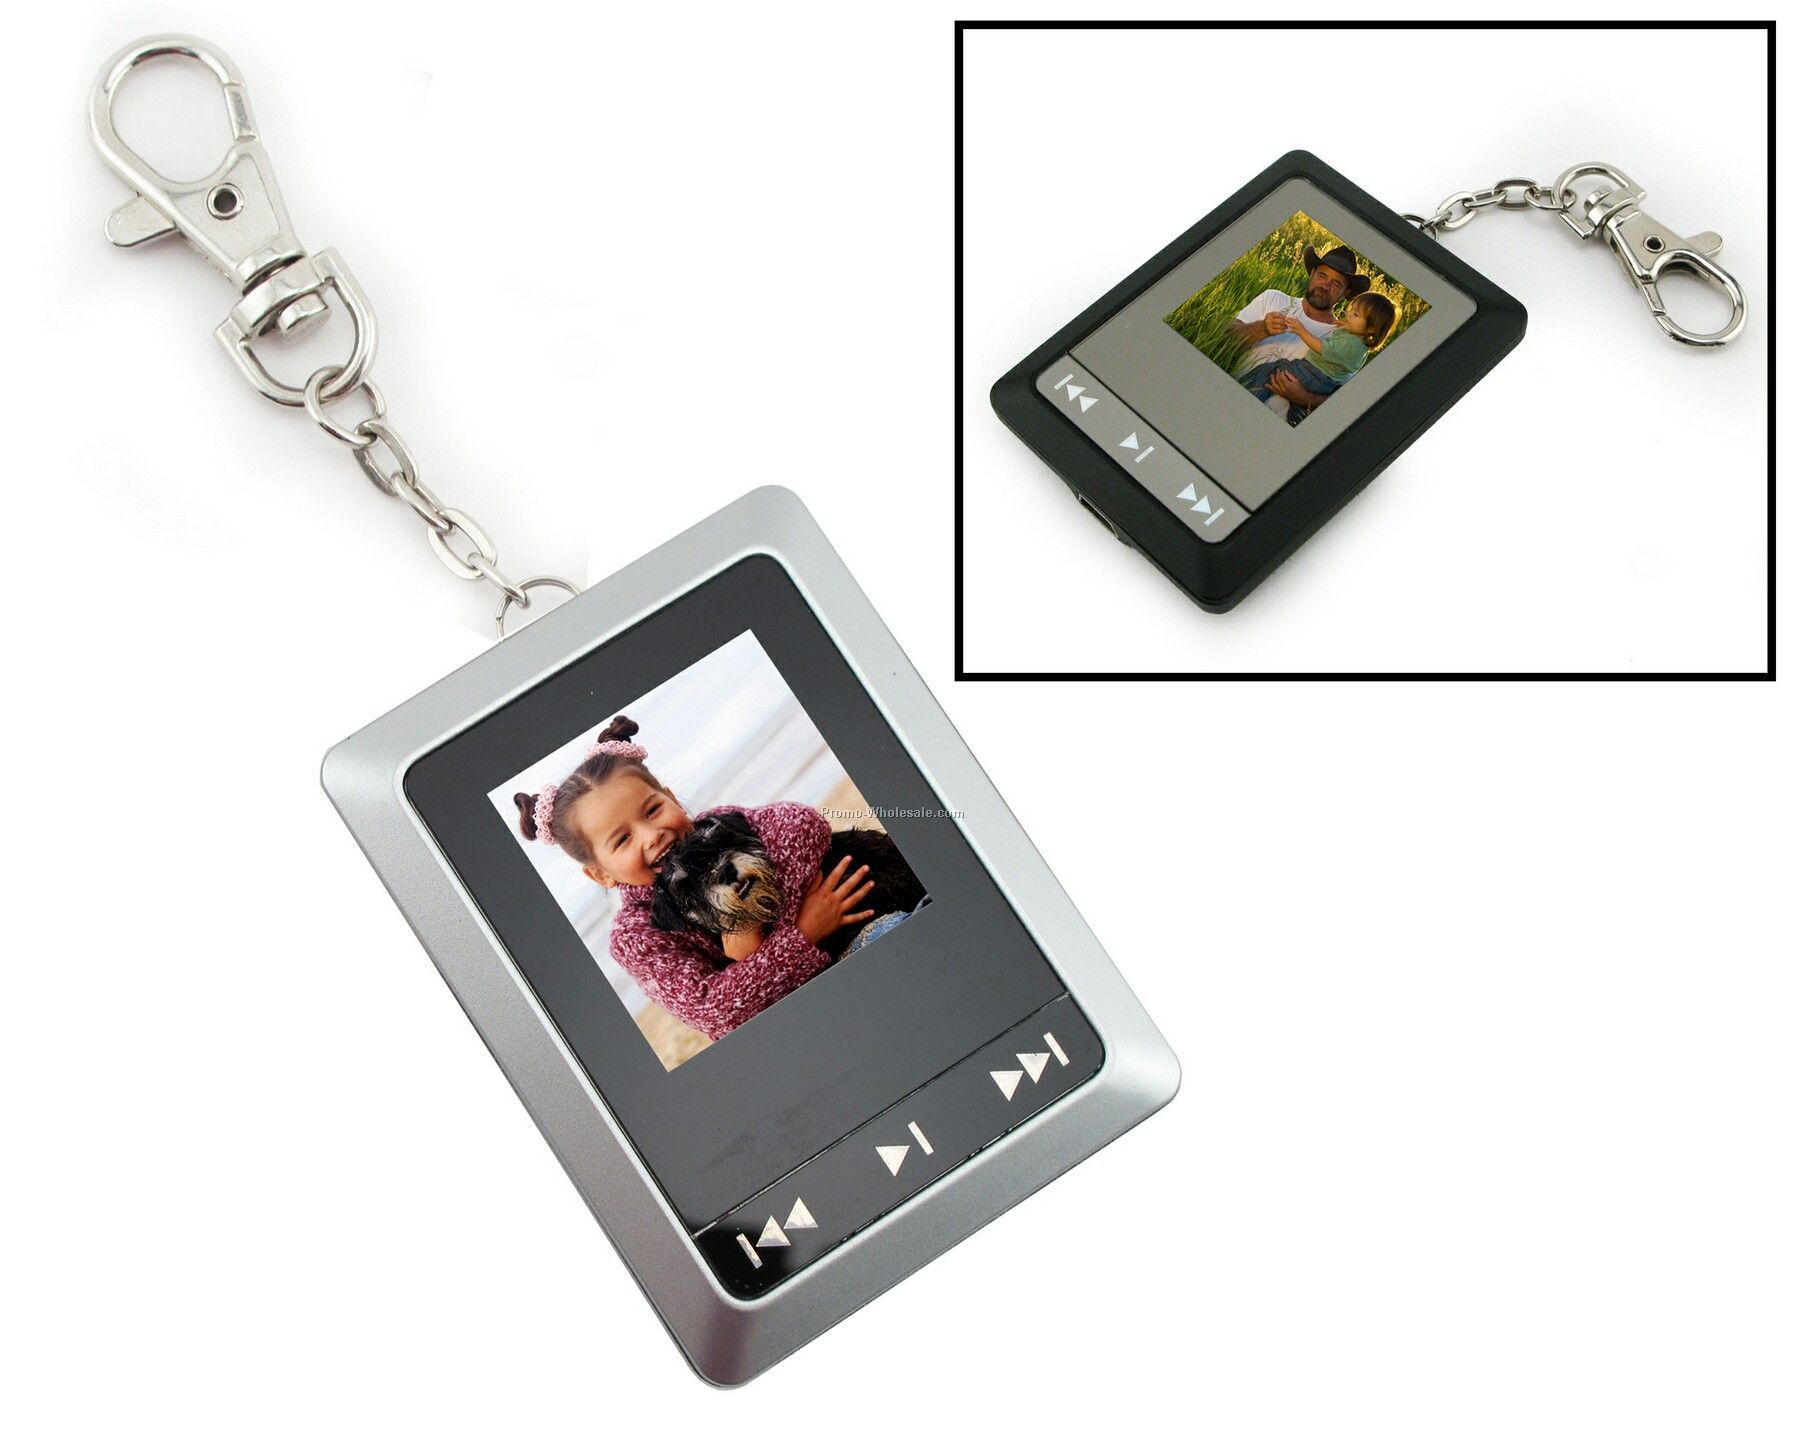 Wholesale Keychain Digital Picture Frame From China